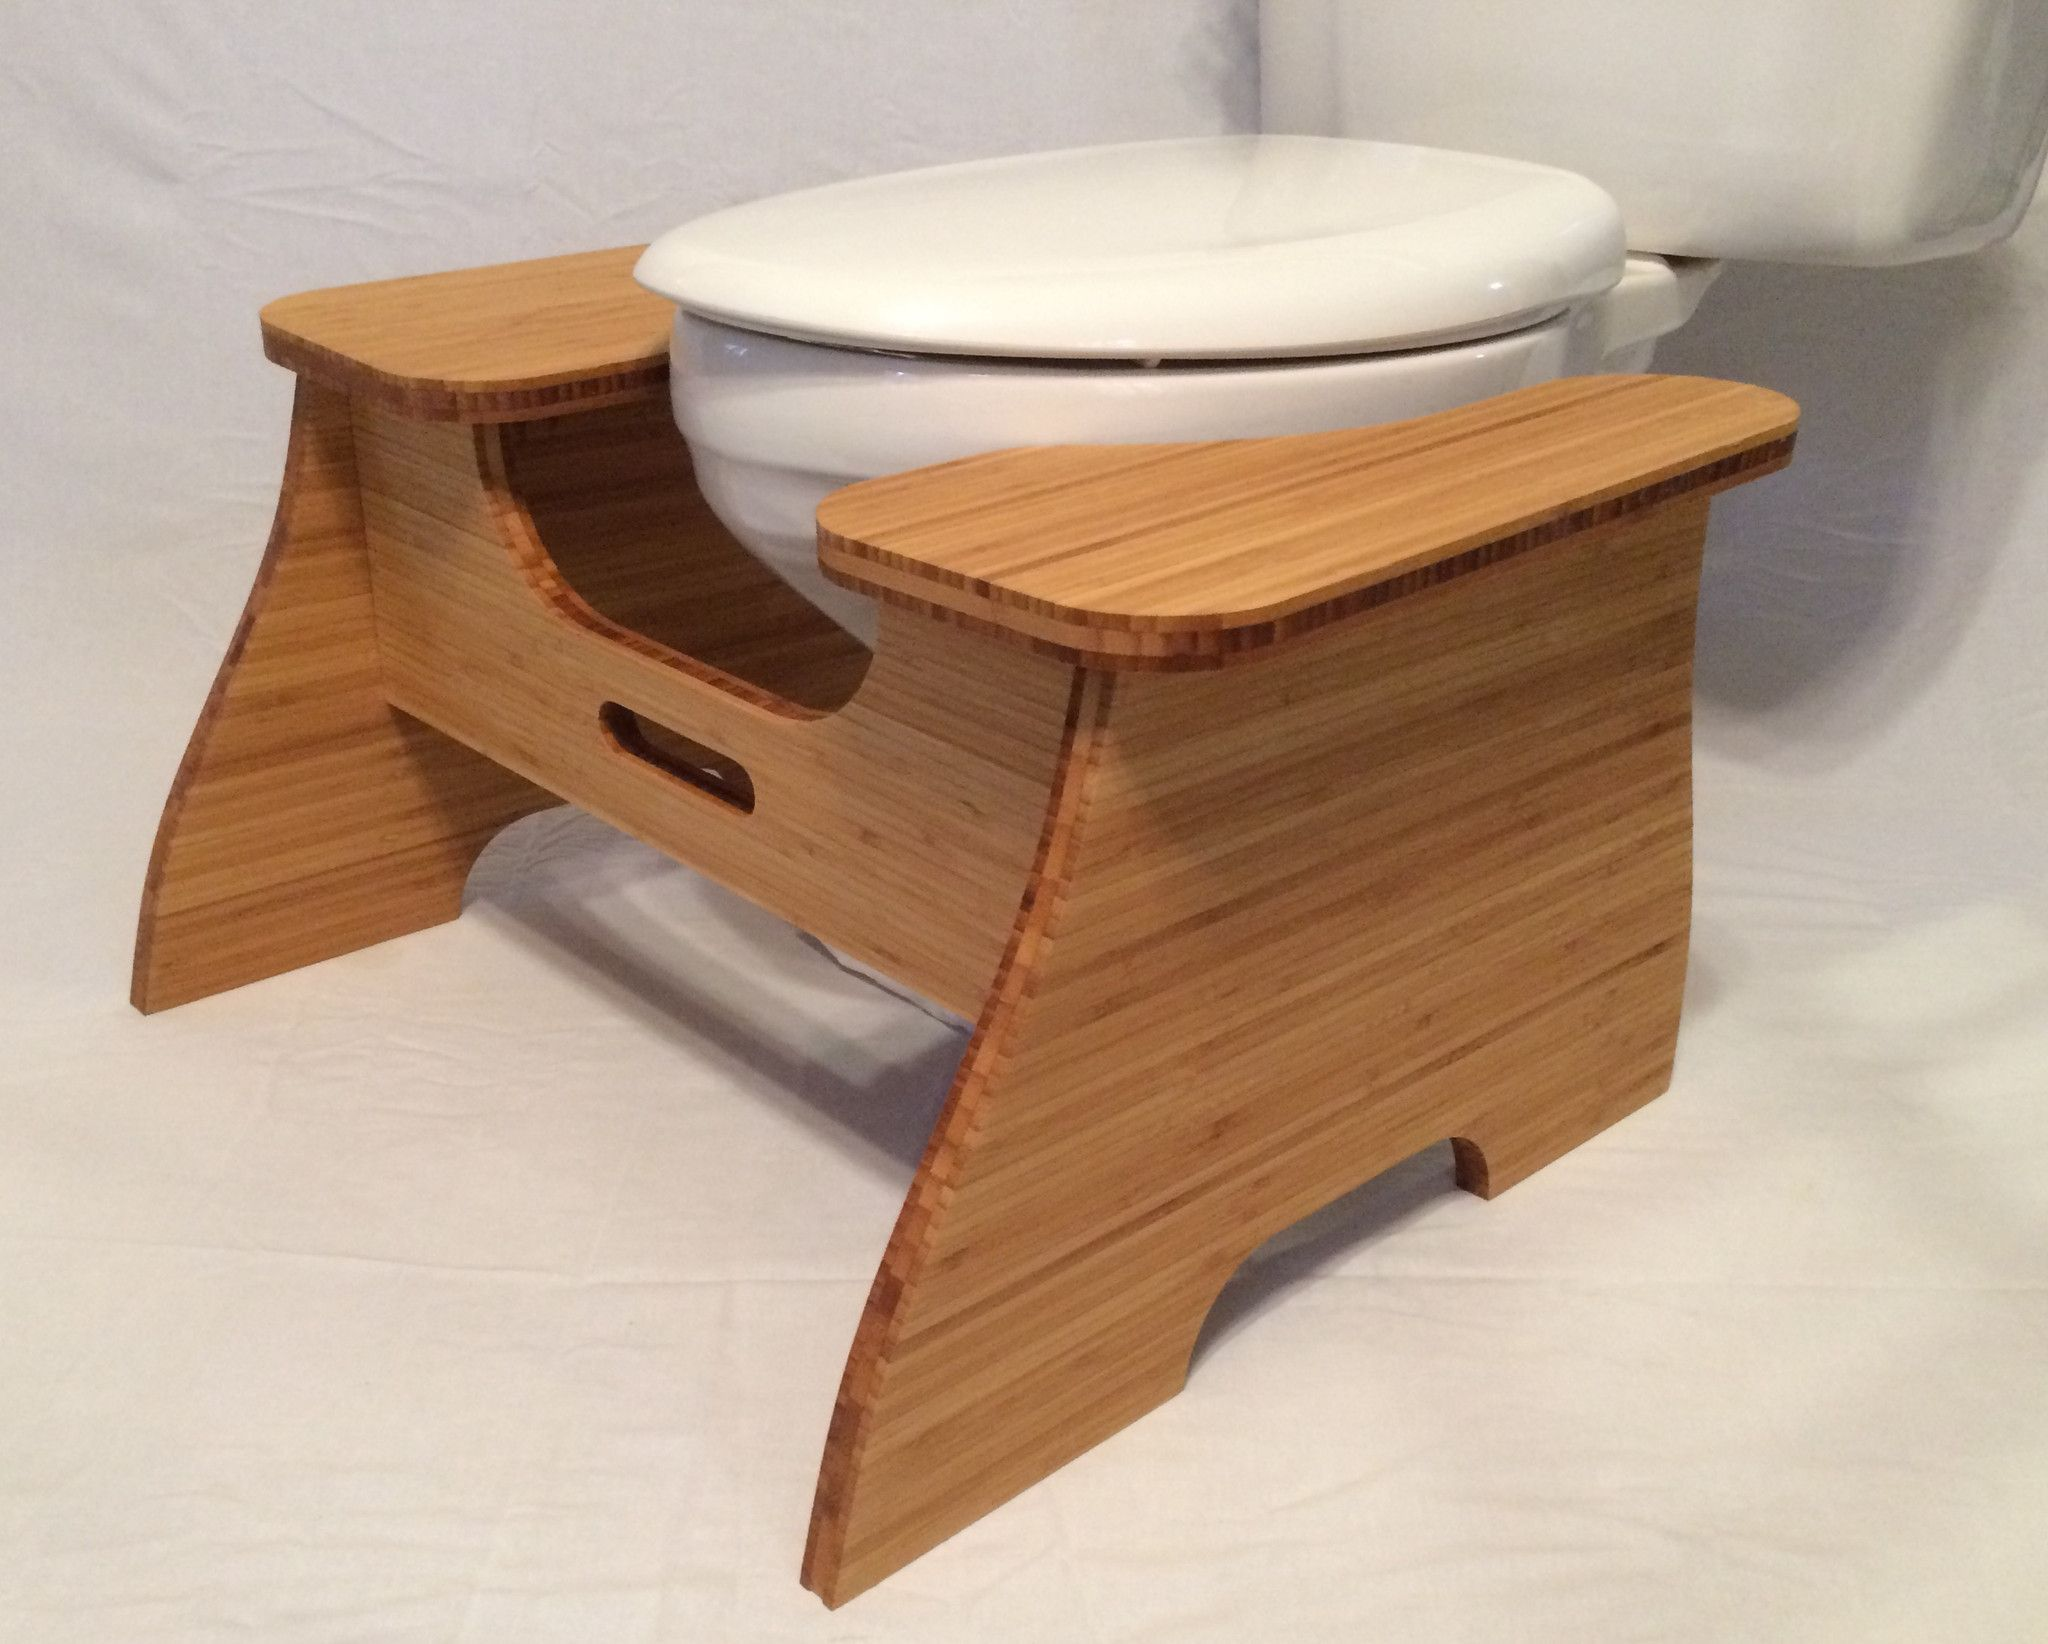 image quarter bamboo bathroom stool high bamboo poop stoop full squat toilet foot stool